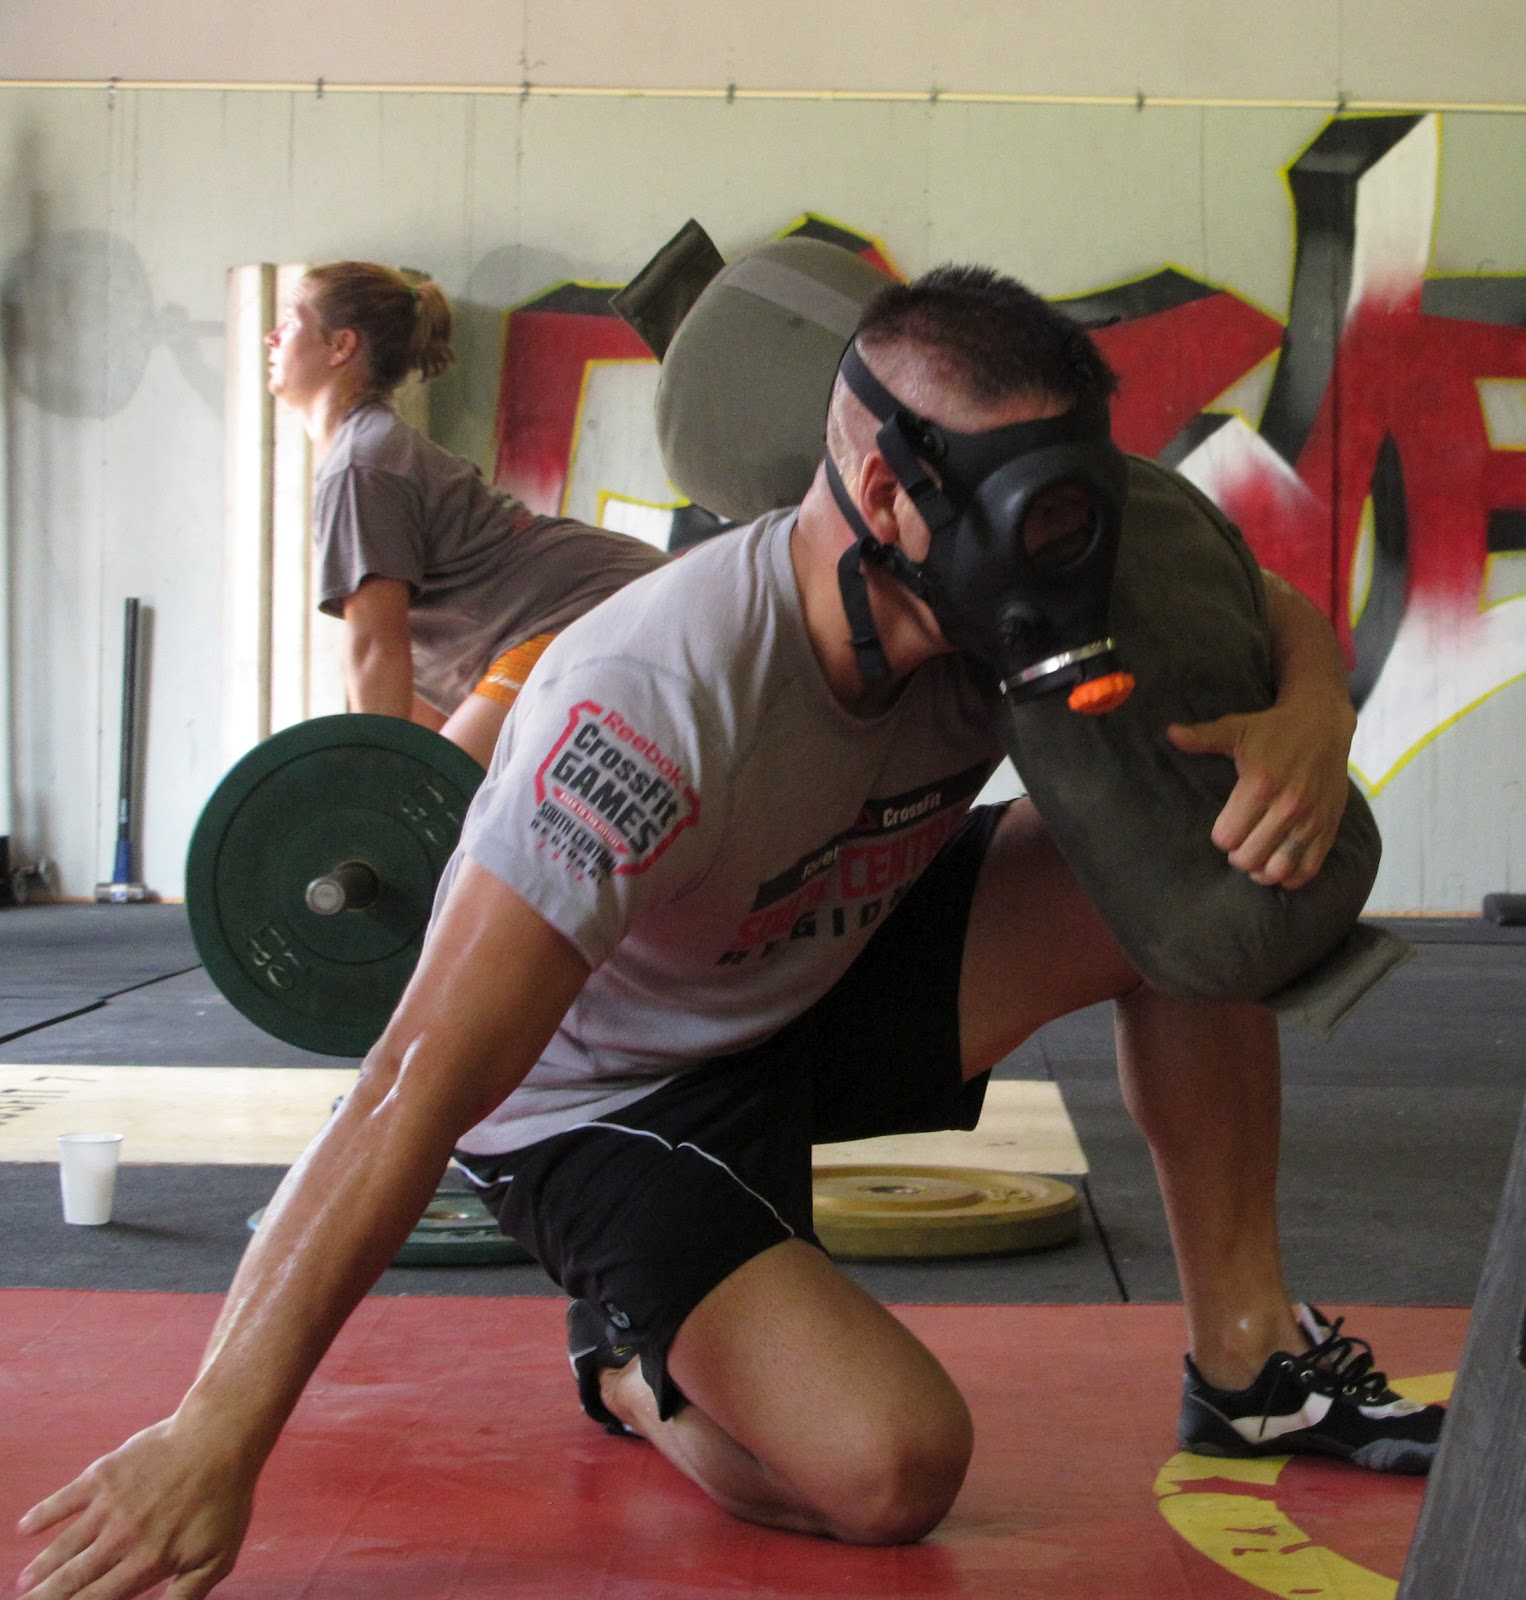 Brandt crossfit downtown fort worth - South Central Crossfit Regional Athlete Mackey Hermosillo Finds An Alternative Means Of Protection Against Odor